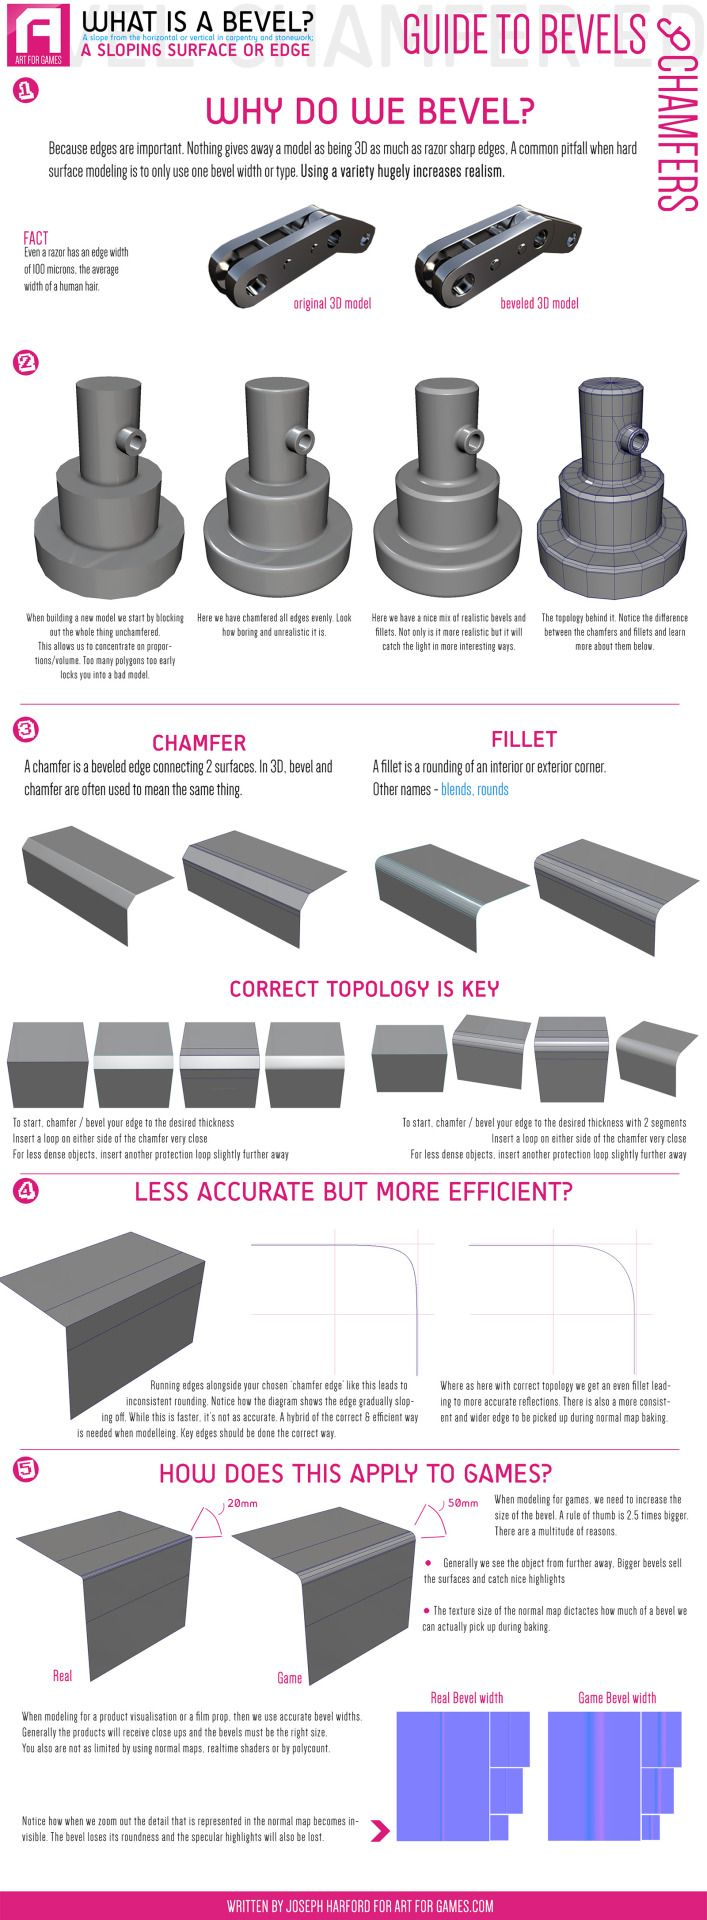 BEVELS AND CHAMFERS (modeling) Today I found this guide to bevels . Really useful if you are starting to learn 3D modeling. It is important to pay attention to this kind of details when modeling, it really makes a difference =) SOURCE